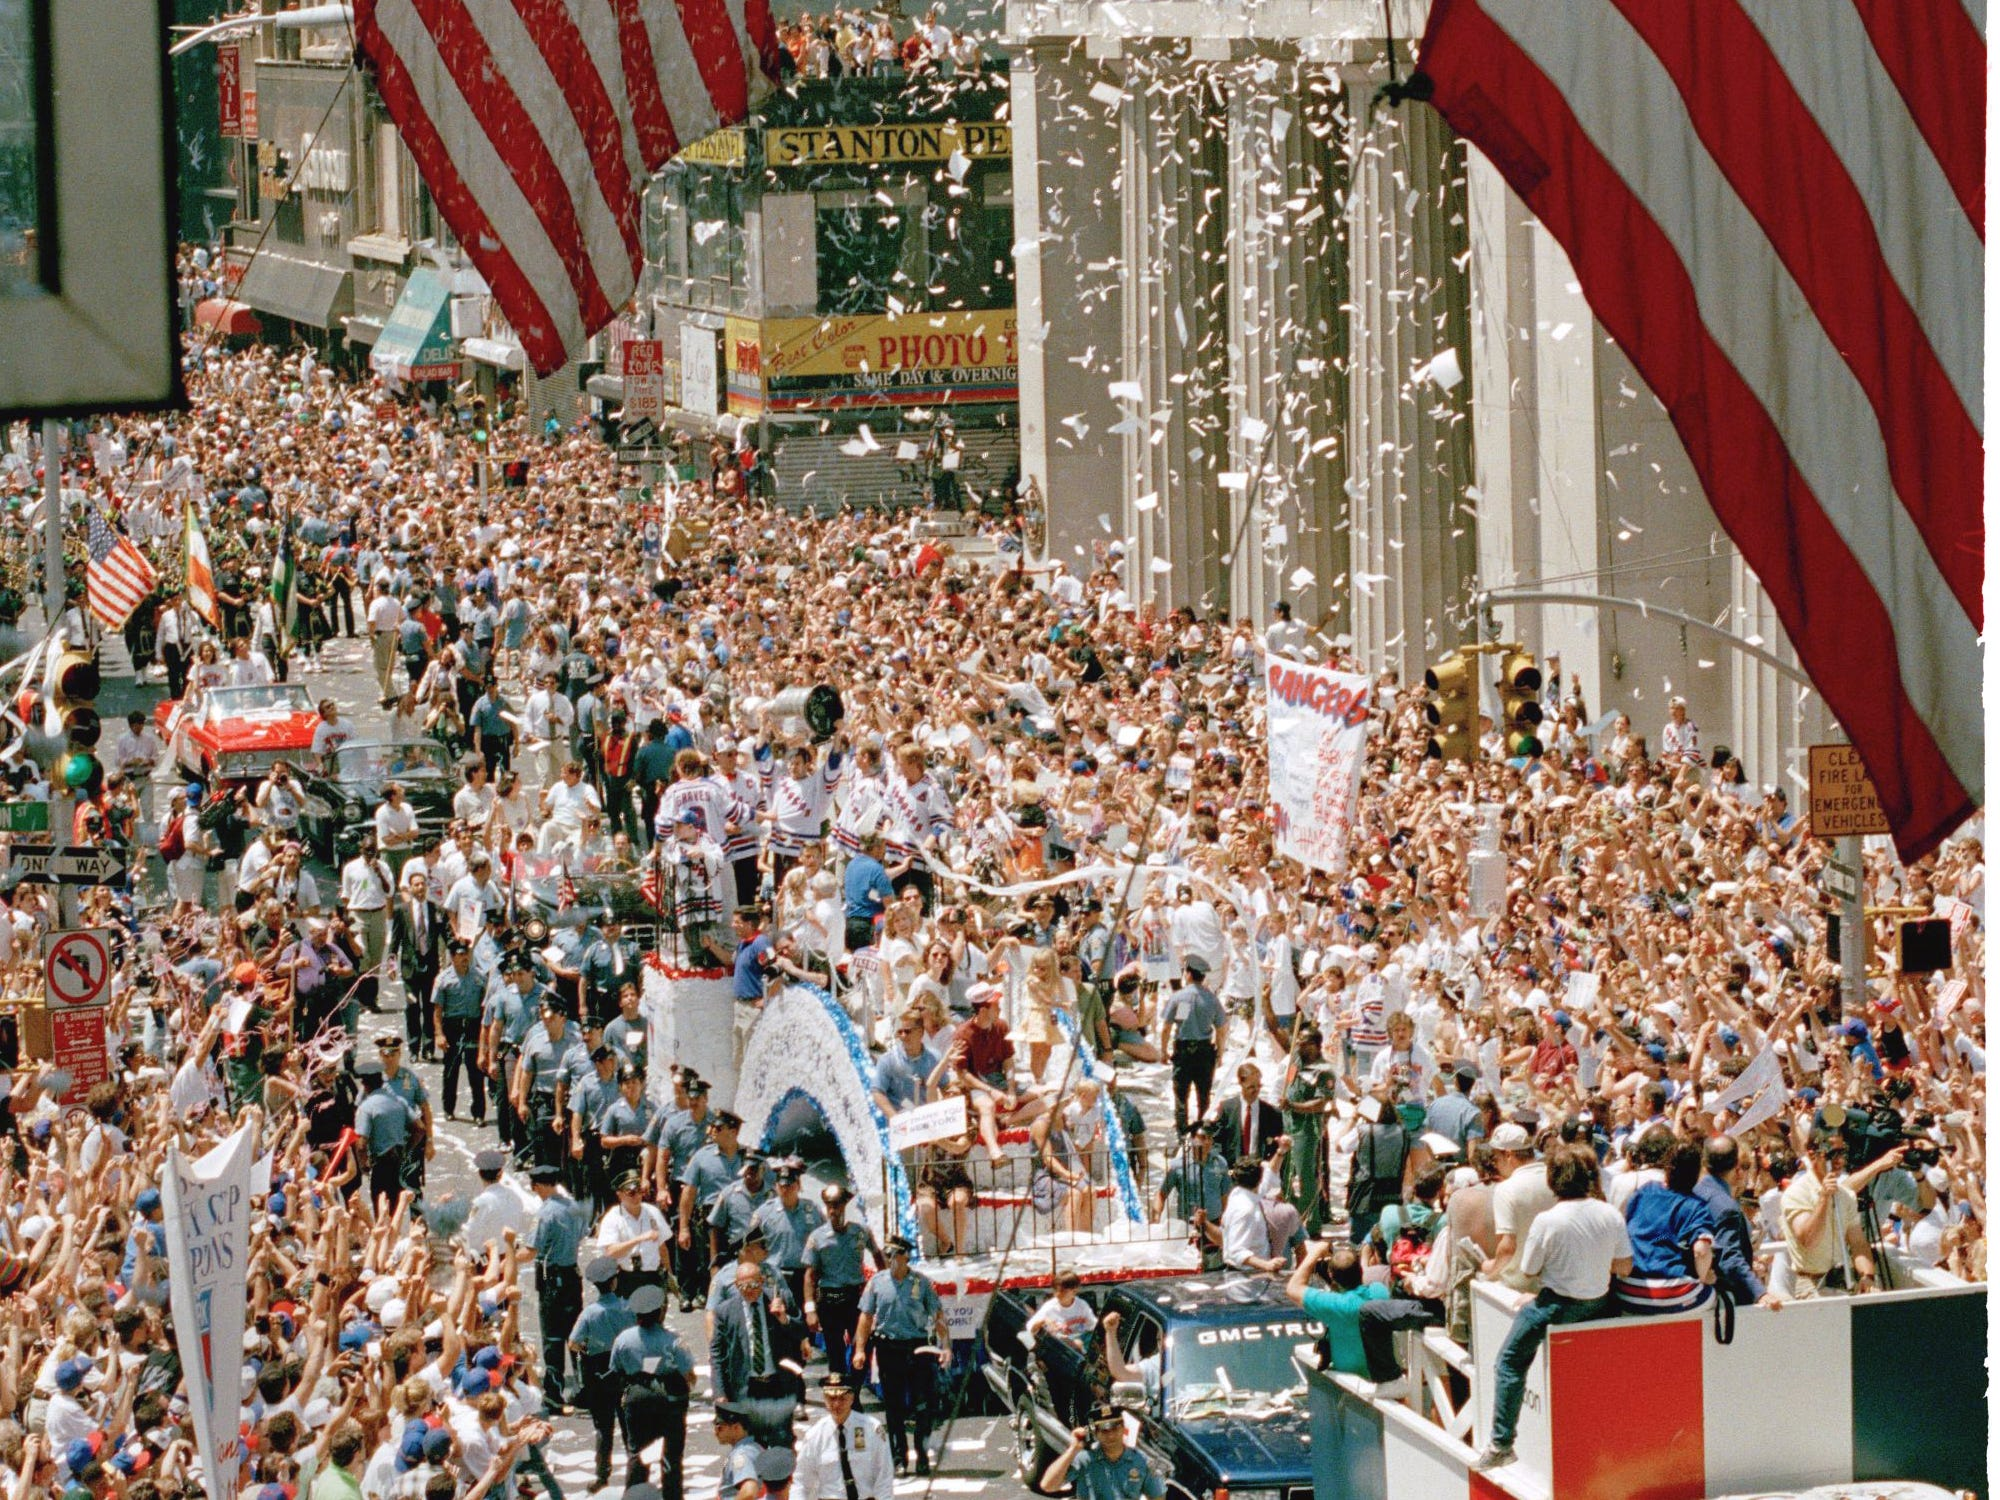 In a sea of ticker tape, fans gather along New York's famed Broadway to cheer the Stanley Cup winning New York Rangers during their victory parade Friday, June 17, 1994.